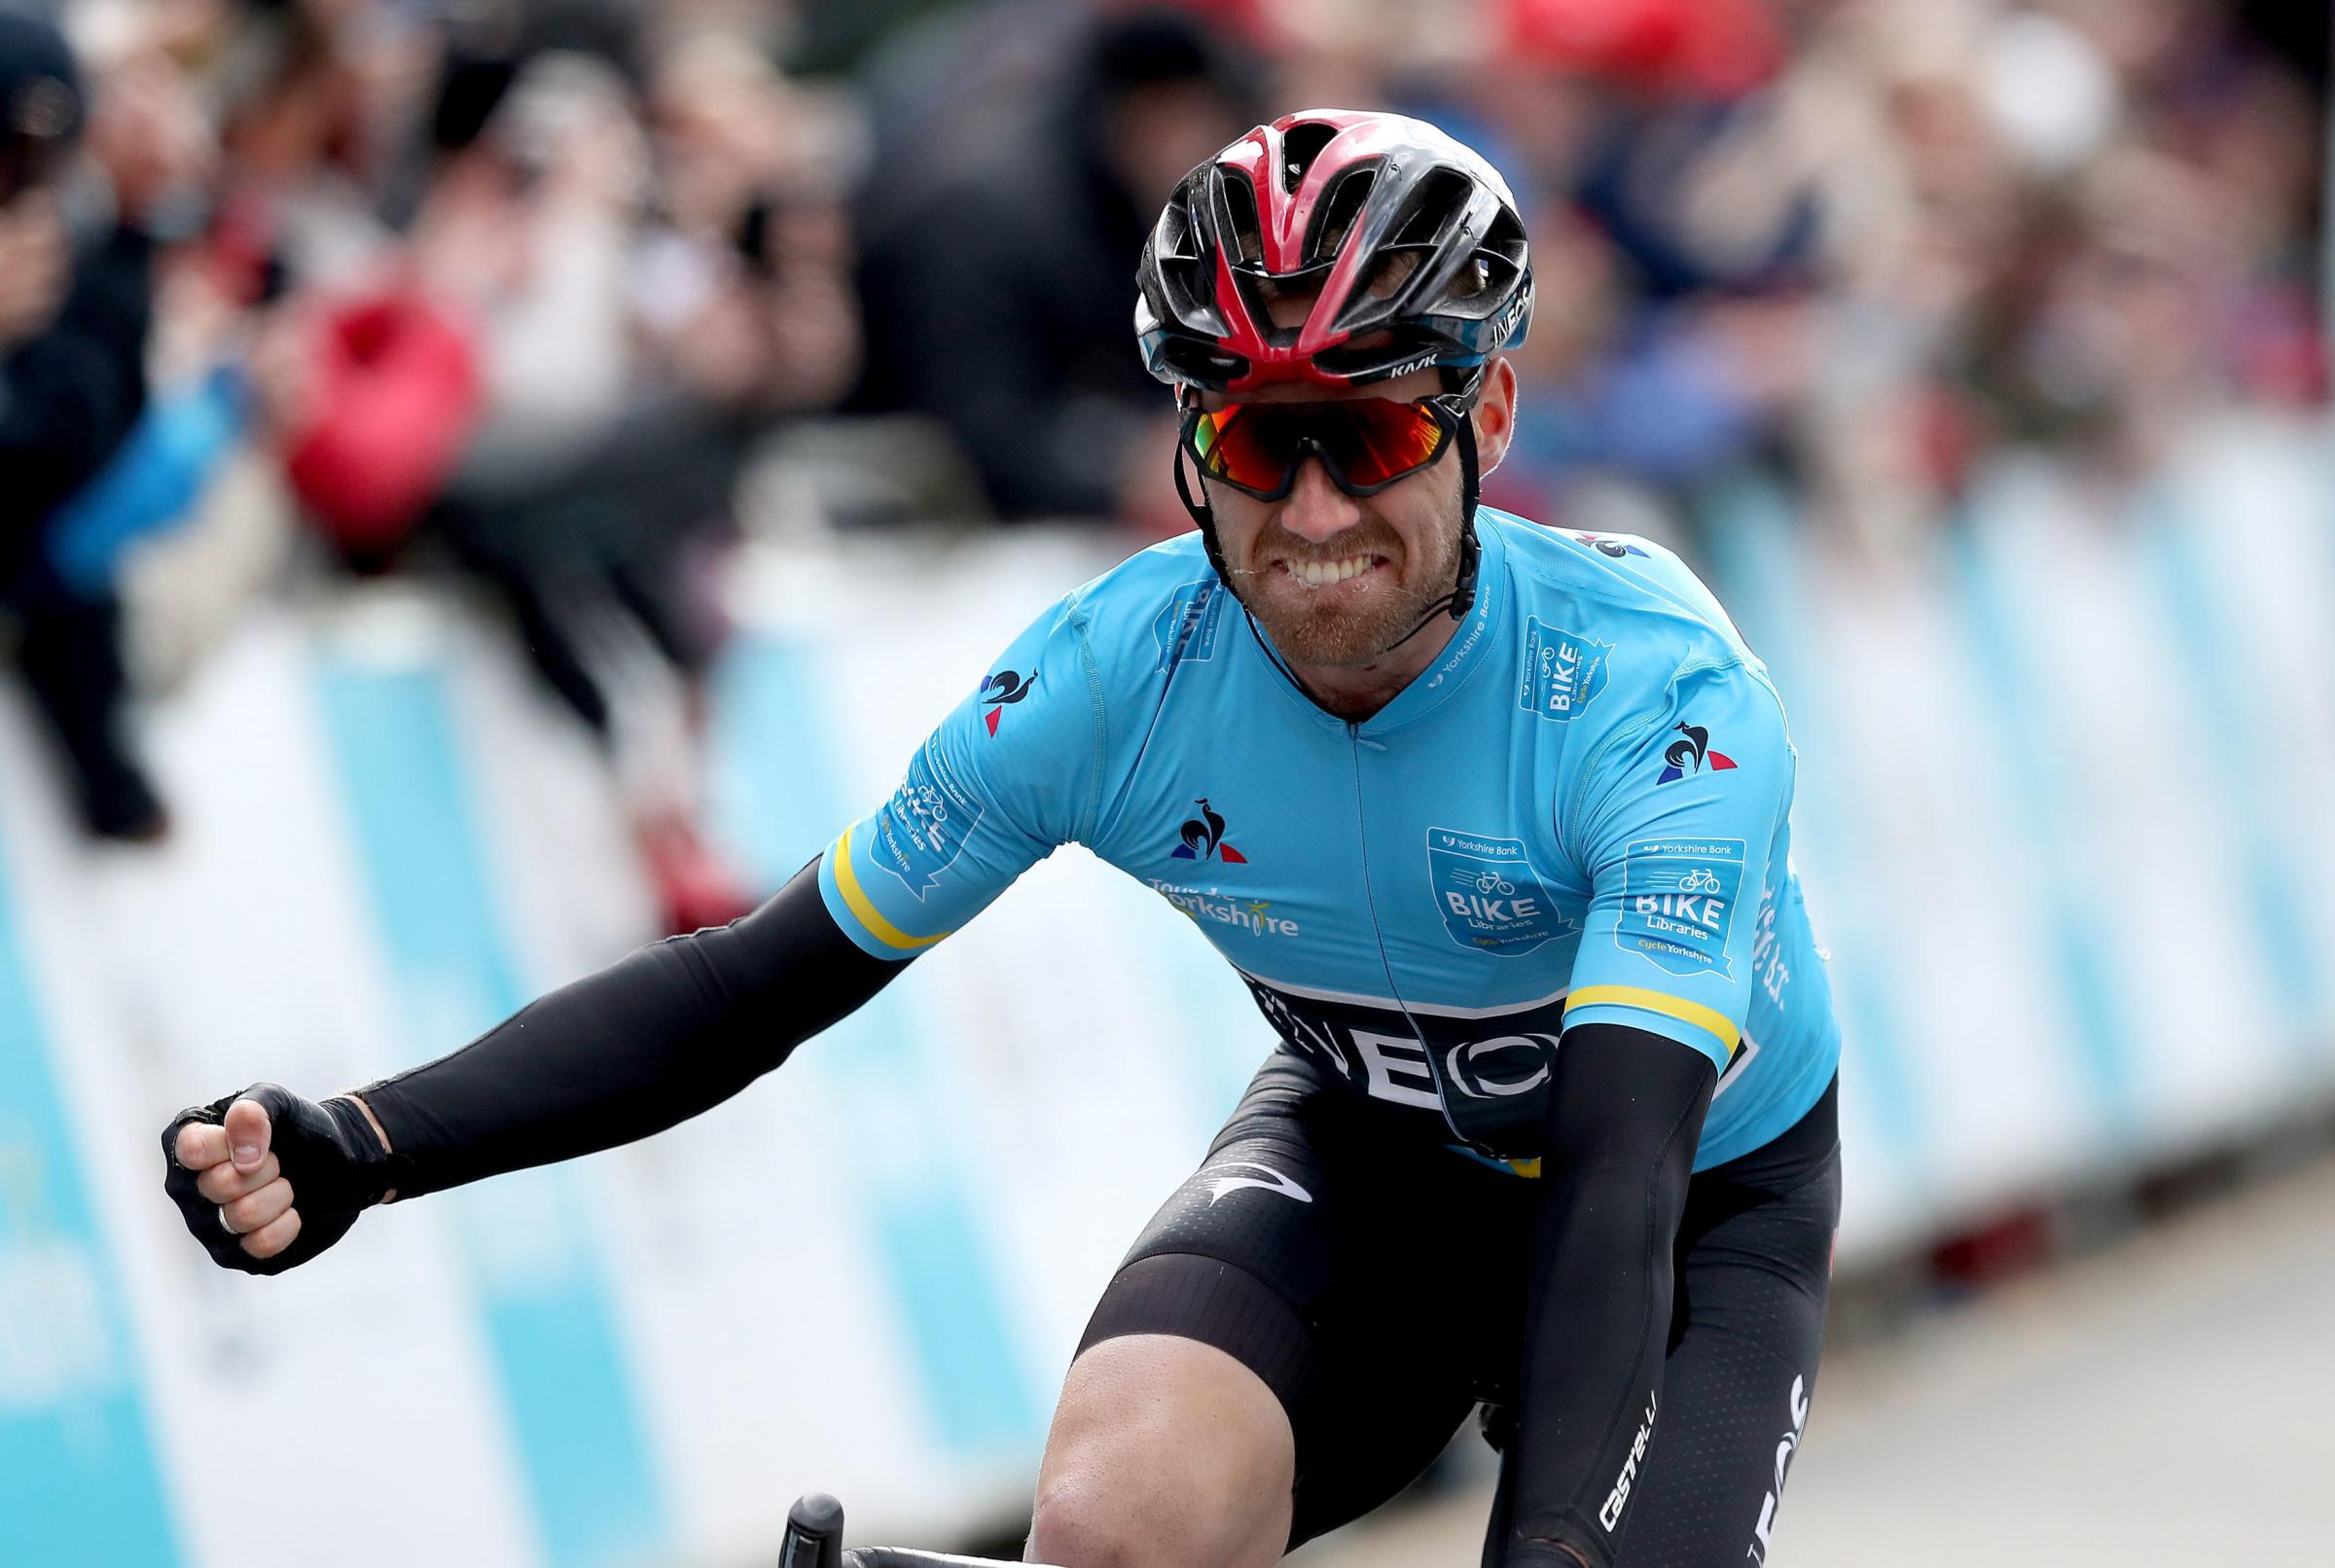 Team Ineos' Chris Lawless celebrates winning the Tour de Yorkshire